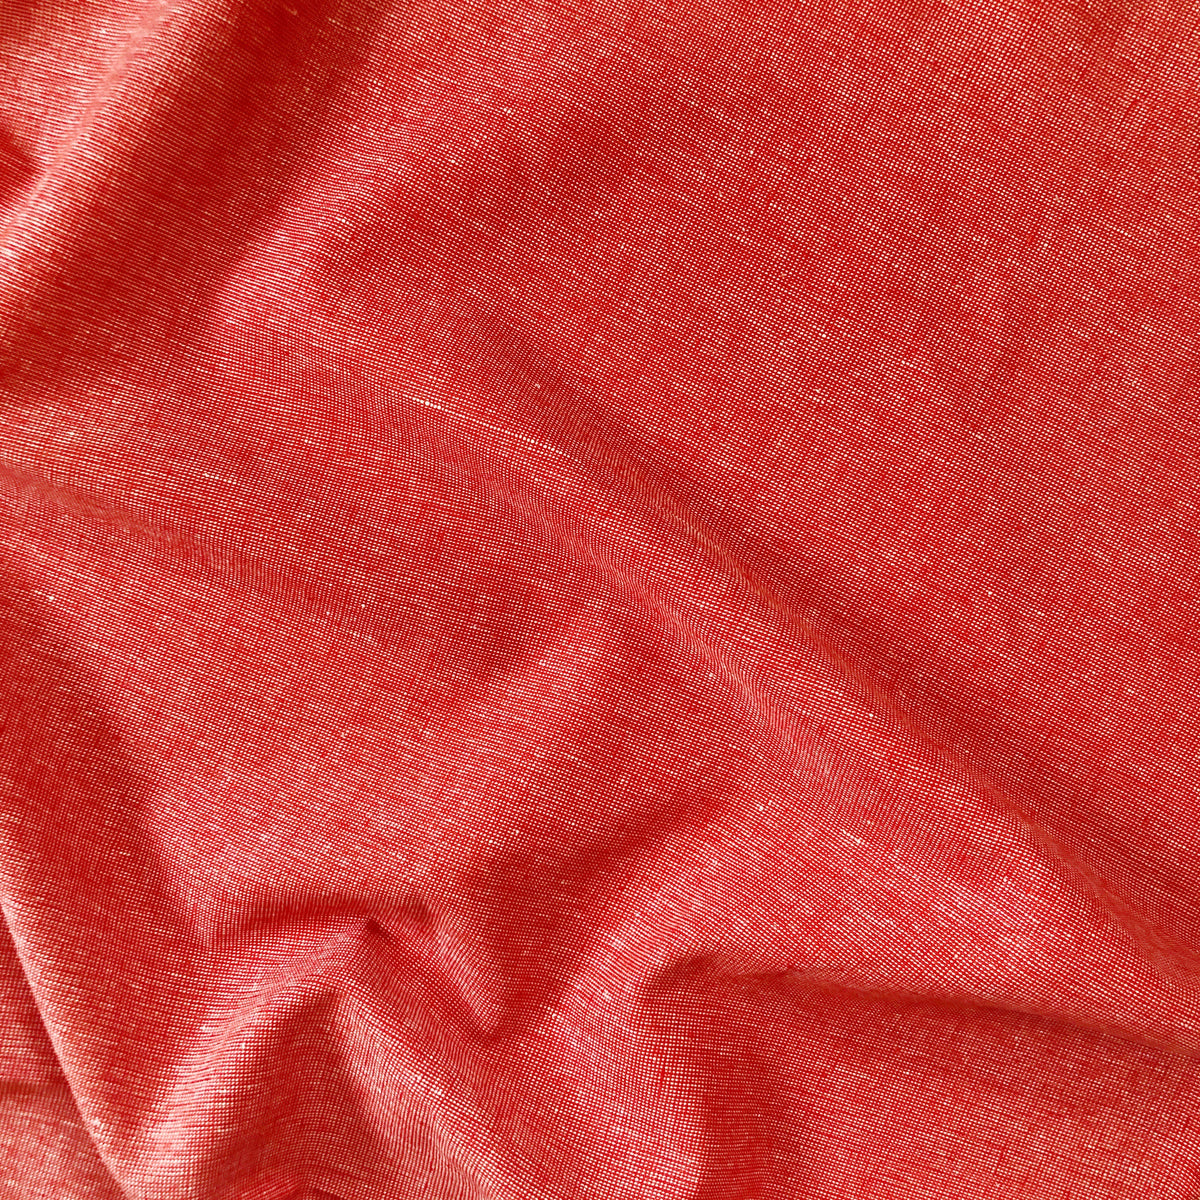 Flame Red Essex Linen